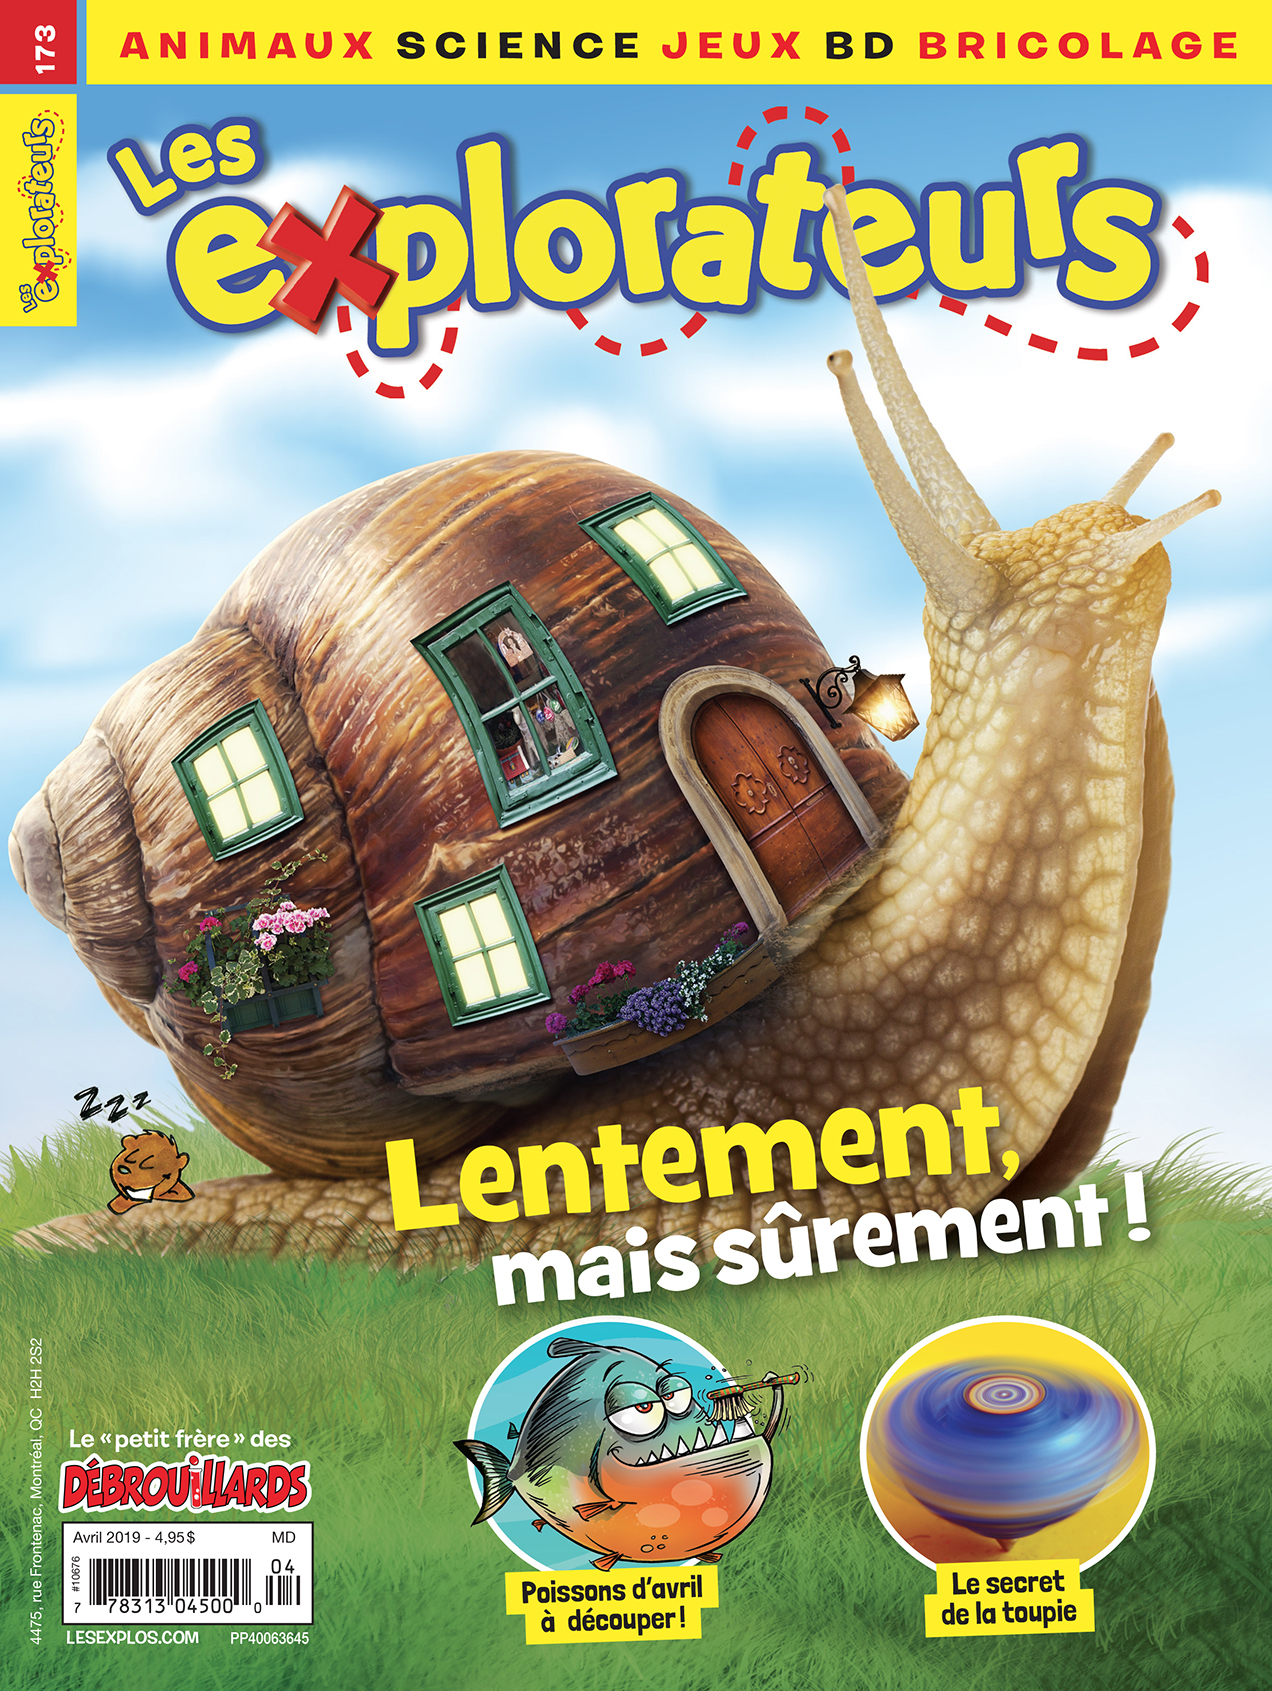 Les Explorateurs, no 173, Avril 2019